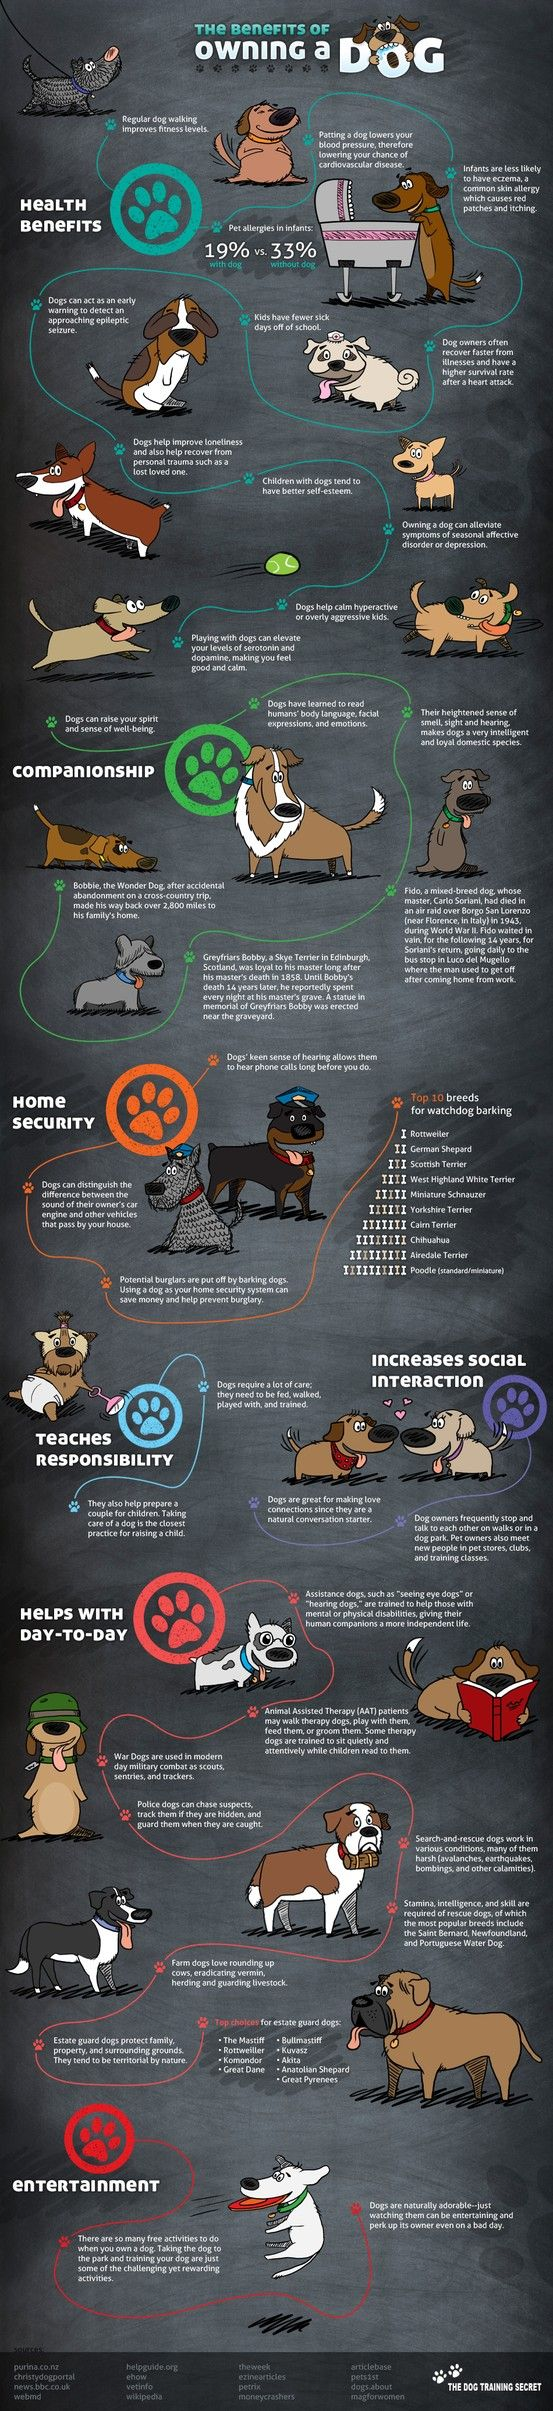 Benefits of owning a Dog! Why not adopt one!!